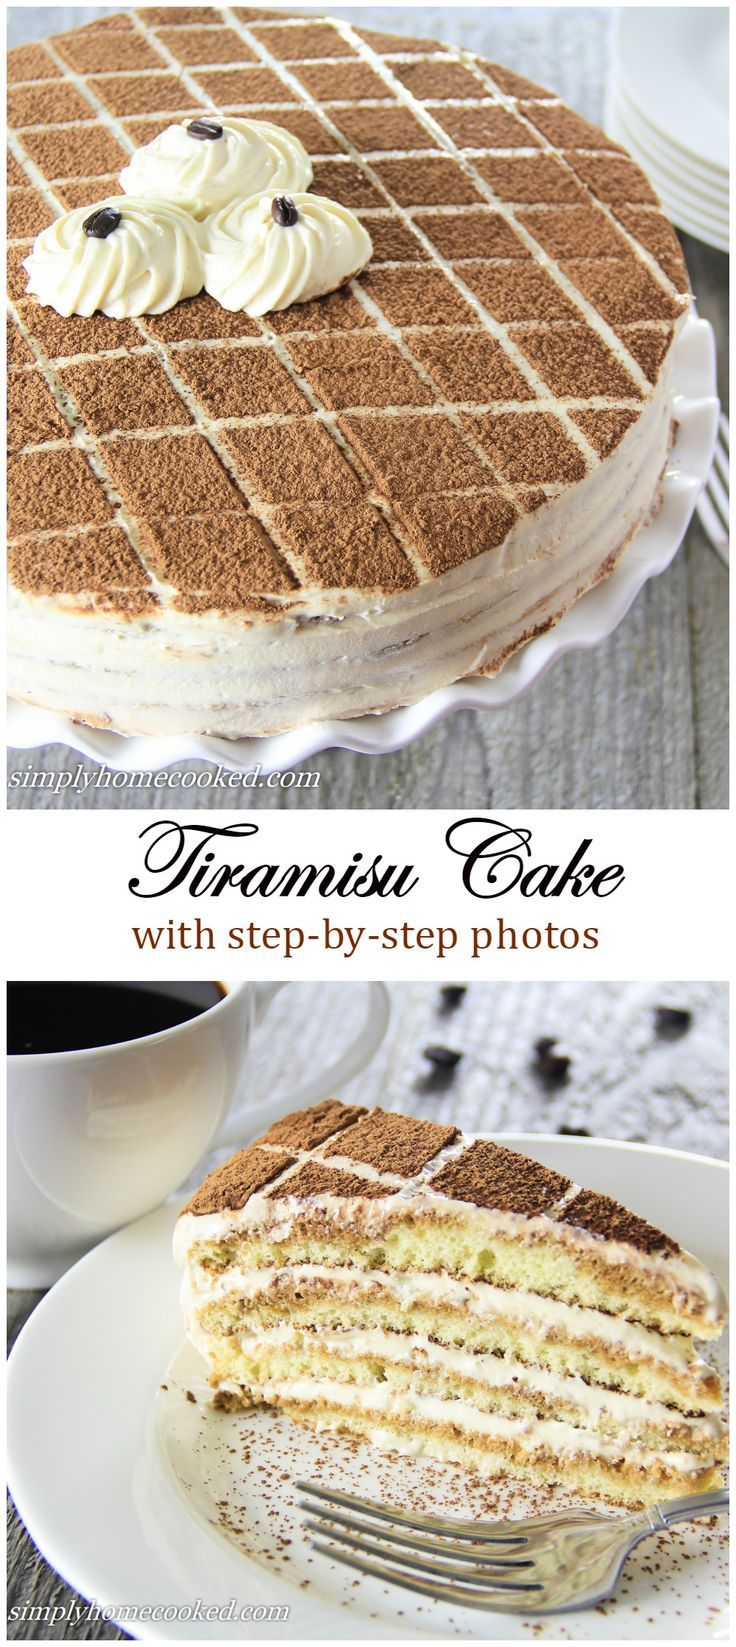 Moist sponge cake soaked in coffee liqueur and layered between a rich mascarpone based cream. This tiramisu cake is guaranteed to become a new favorite